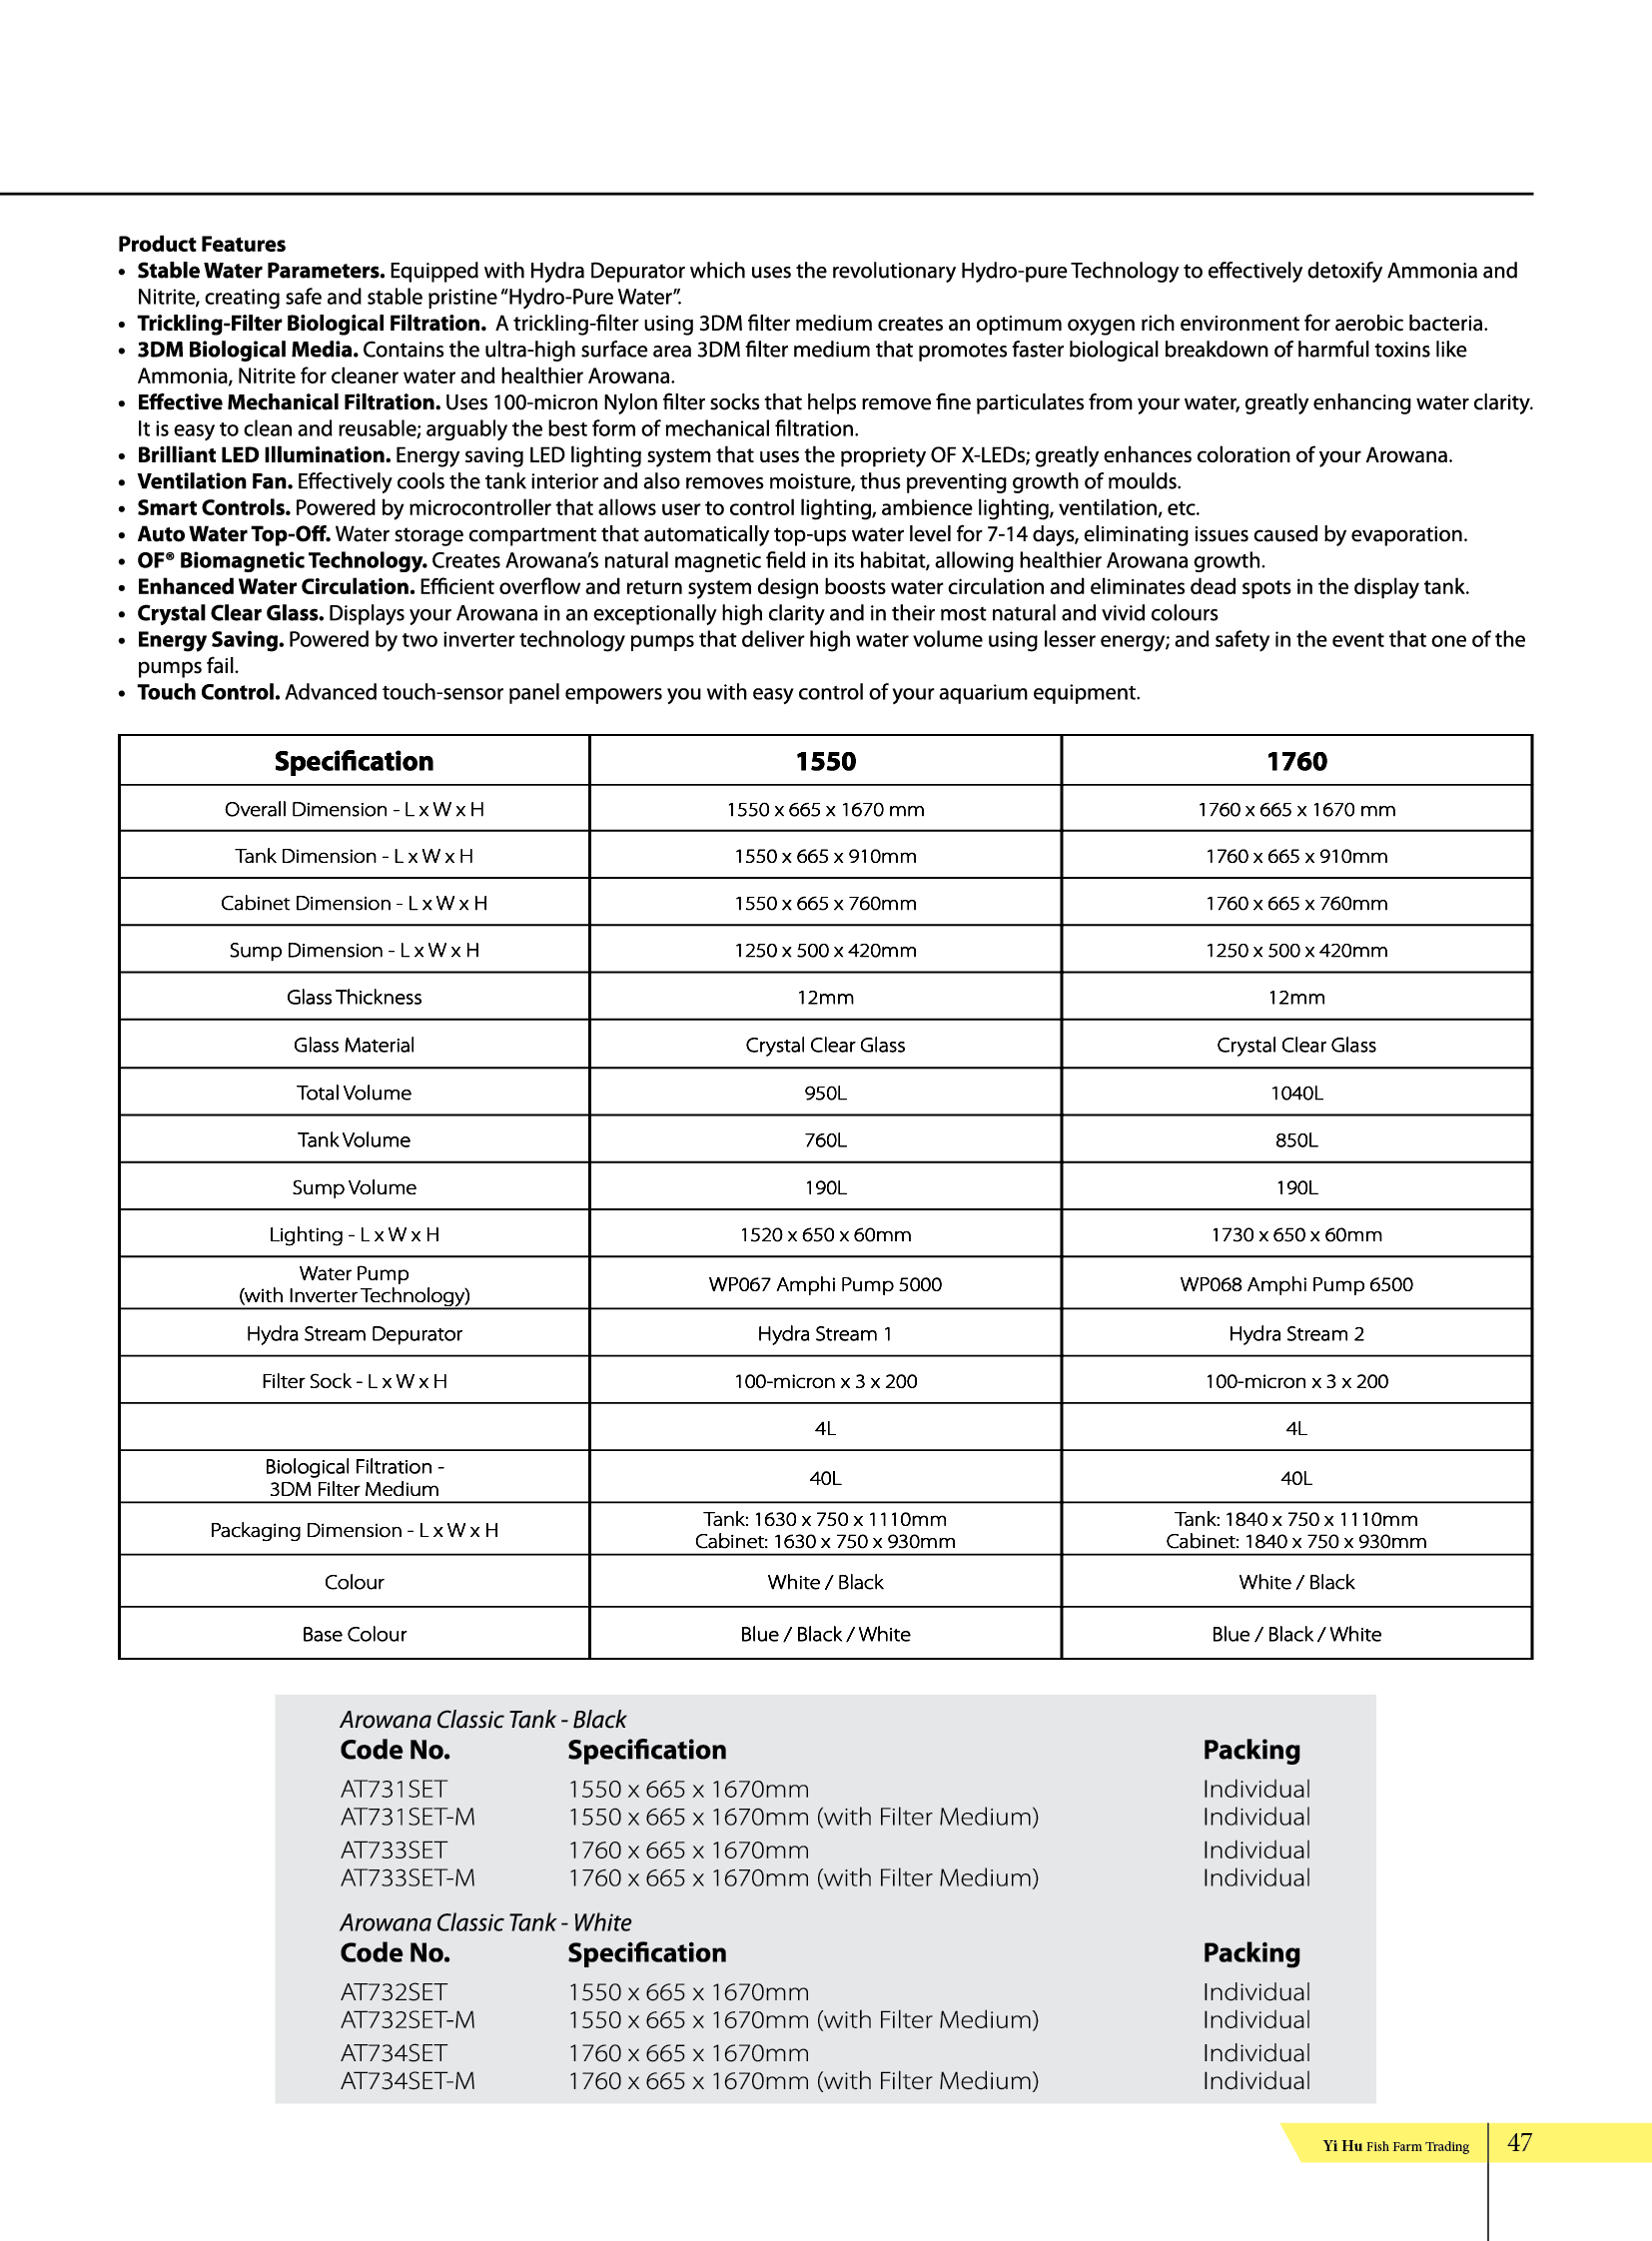 Recognizing Polar Molecules Worksheet Answers - The Best and Most ...